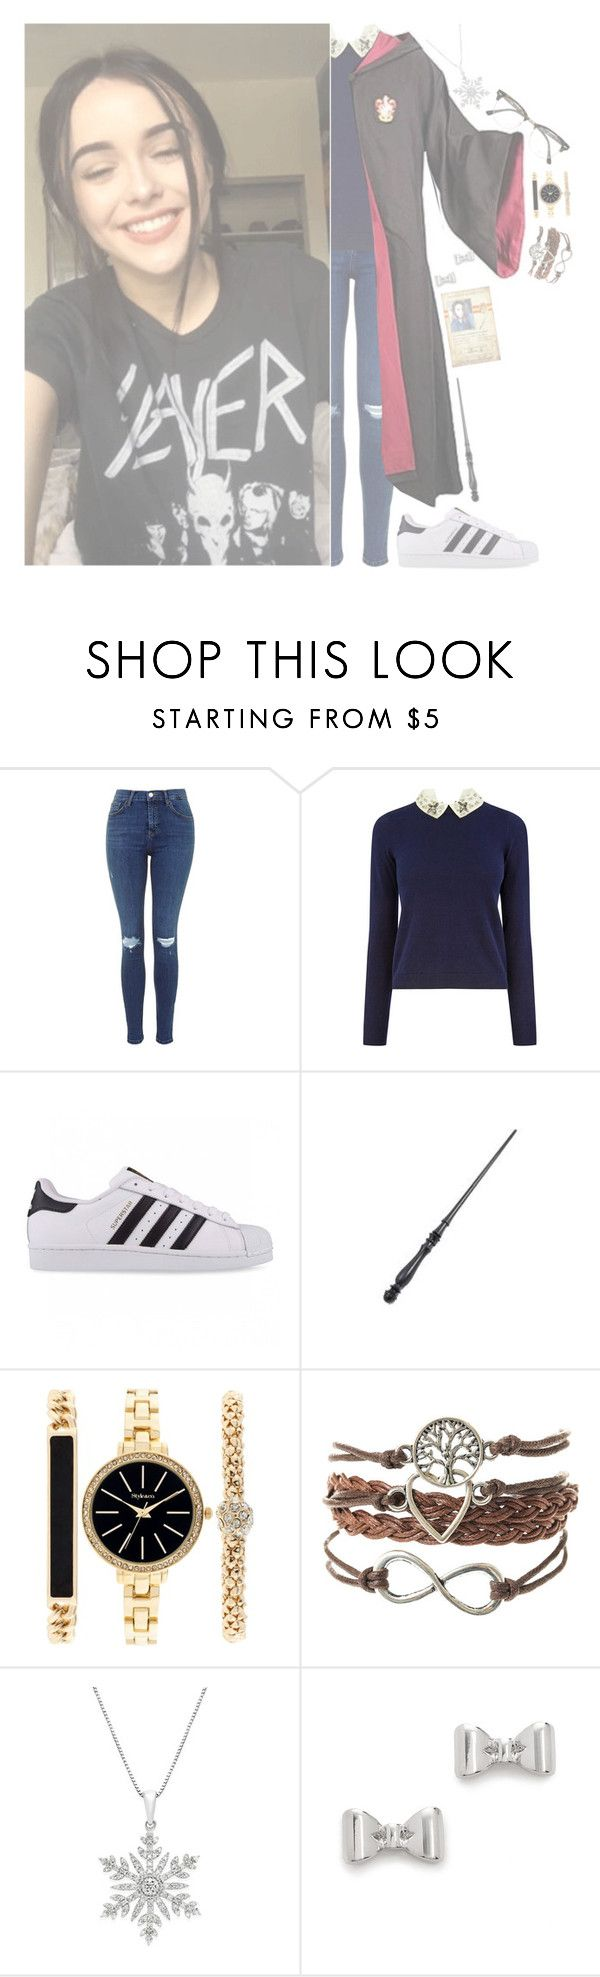 """""""&- ootd; same ol' hogwarts """" by sillylovinganons ❤ liked on Polyvore featuring Oasis, adidas Originals, Style & Co., Marc by Marc Jacobs and Ray-Ban"""